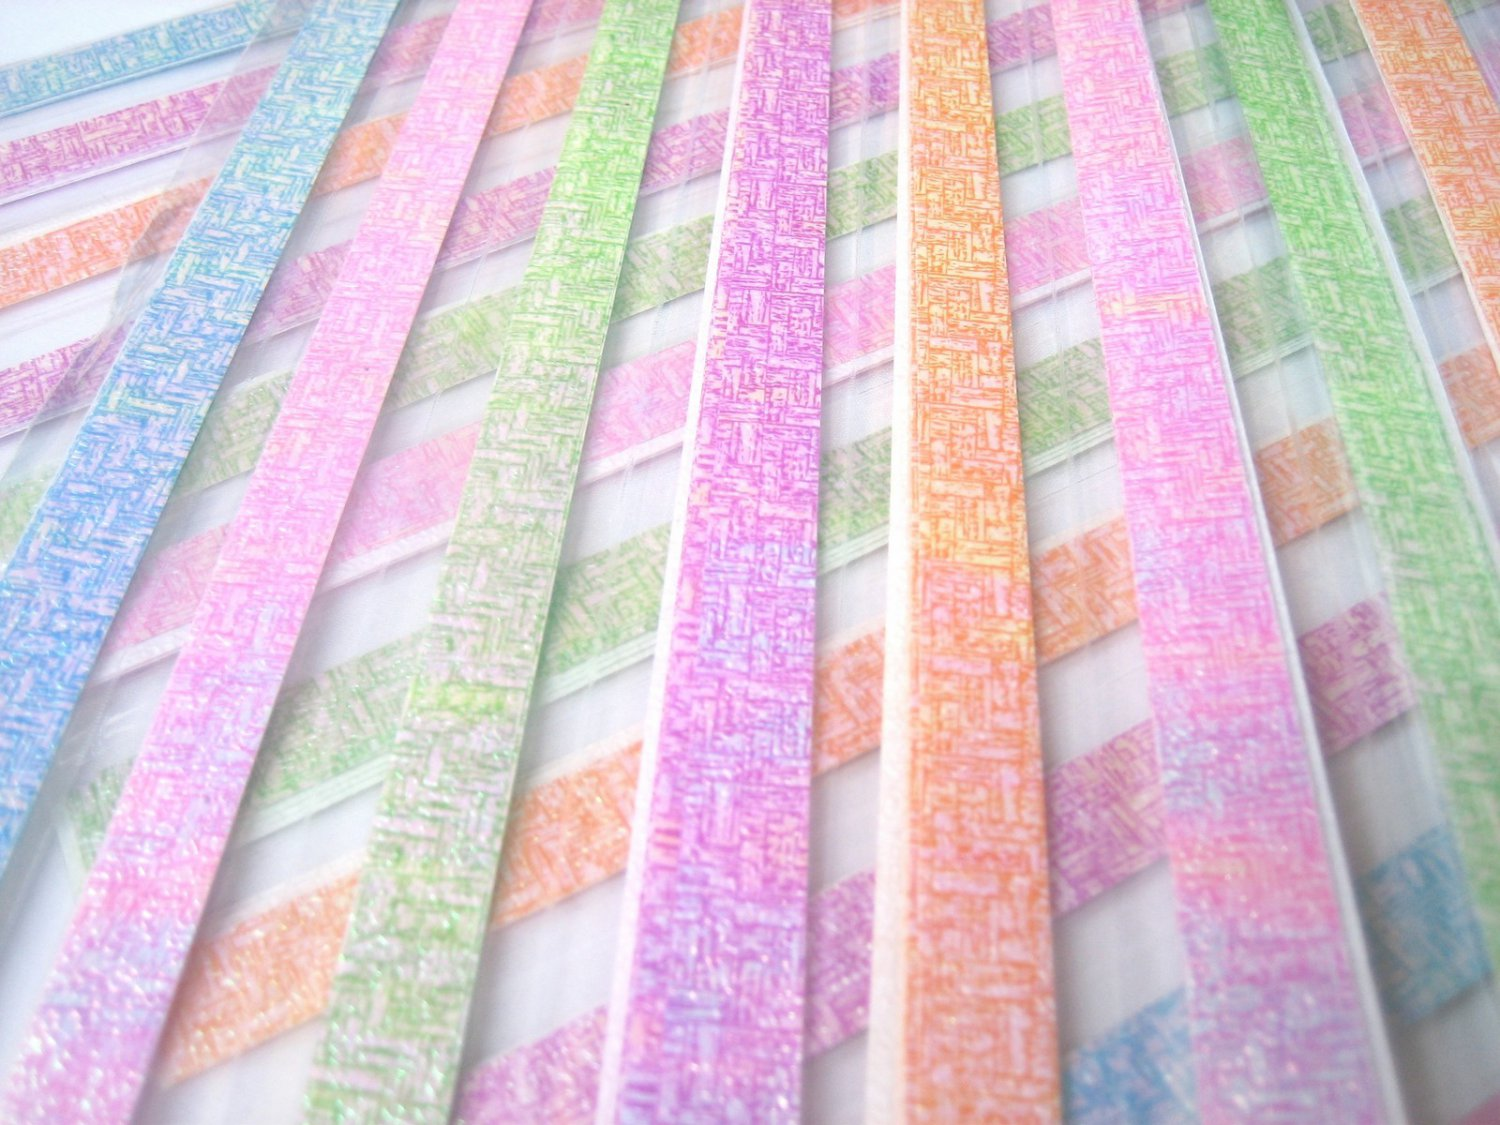 80 strips WEAVING PEARLESCENT Mix Colour Origami Folding Lucky Star Paper Strips 8A